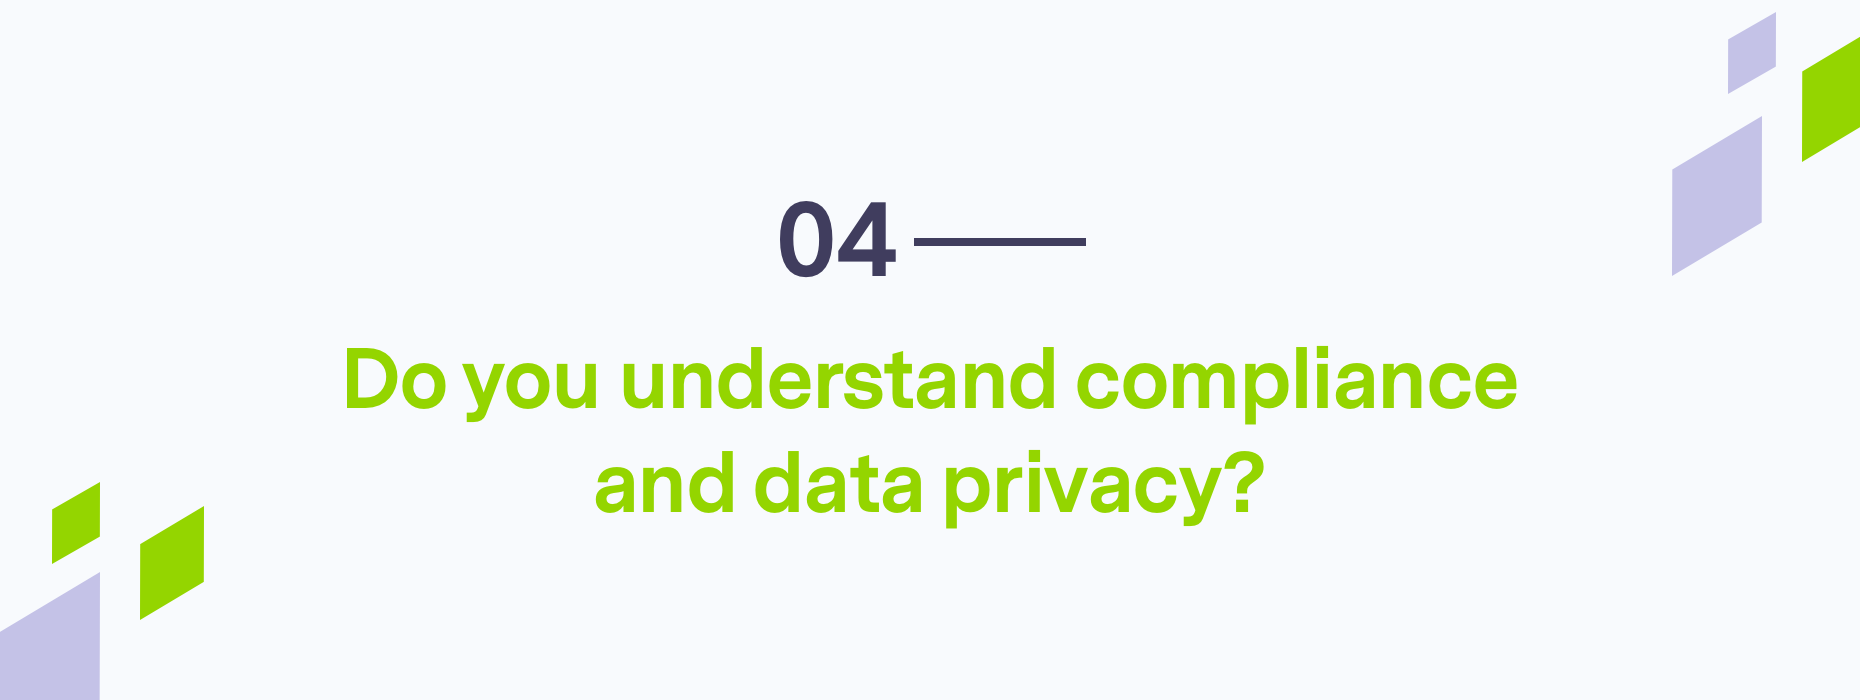 Branded question about understanding compliance and data privacy